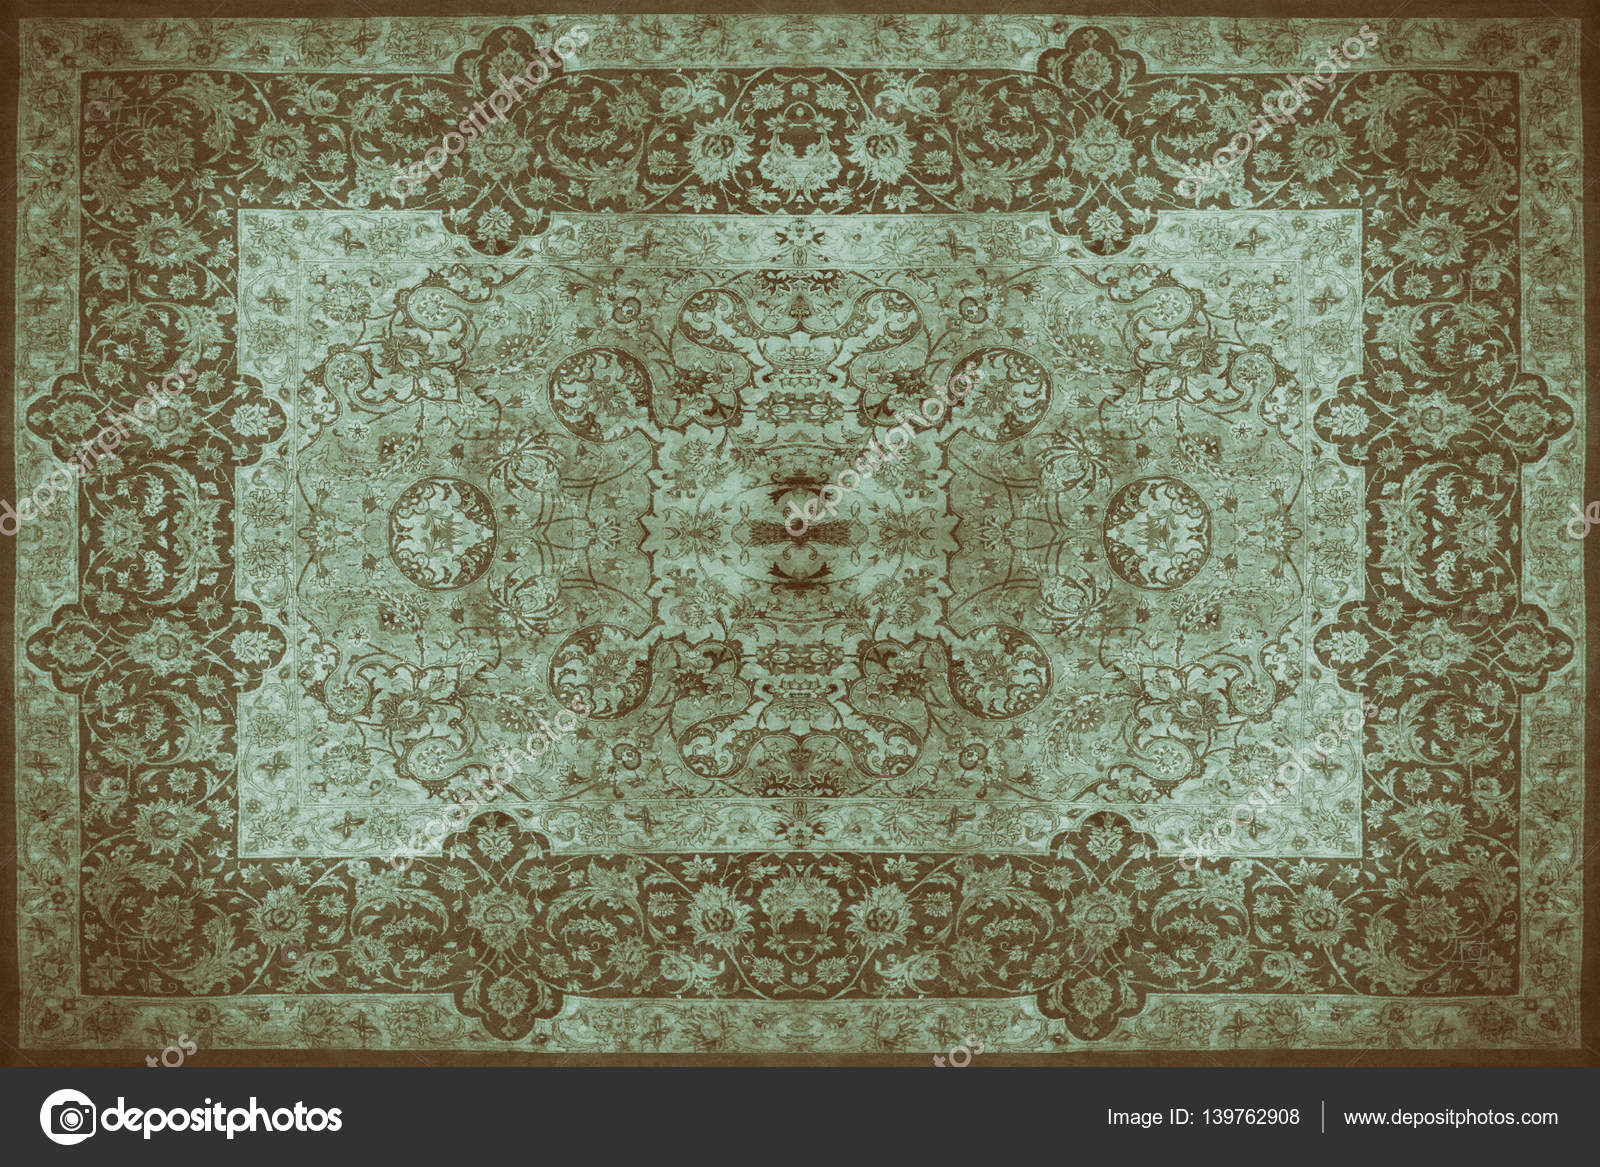 persian carpet texture abstract ornament round mandala pattern middle eastern traditional fabric carpet pattern texture l99 texture